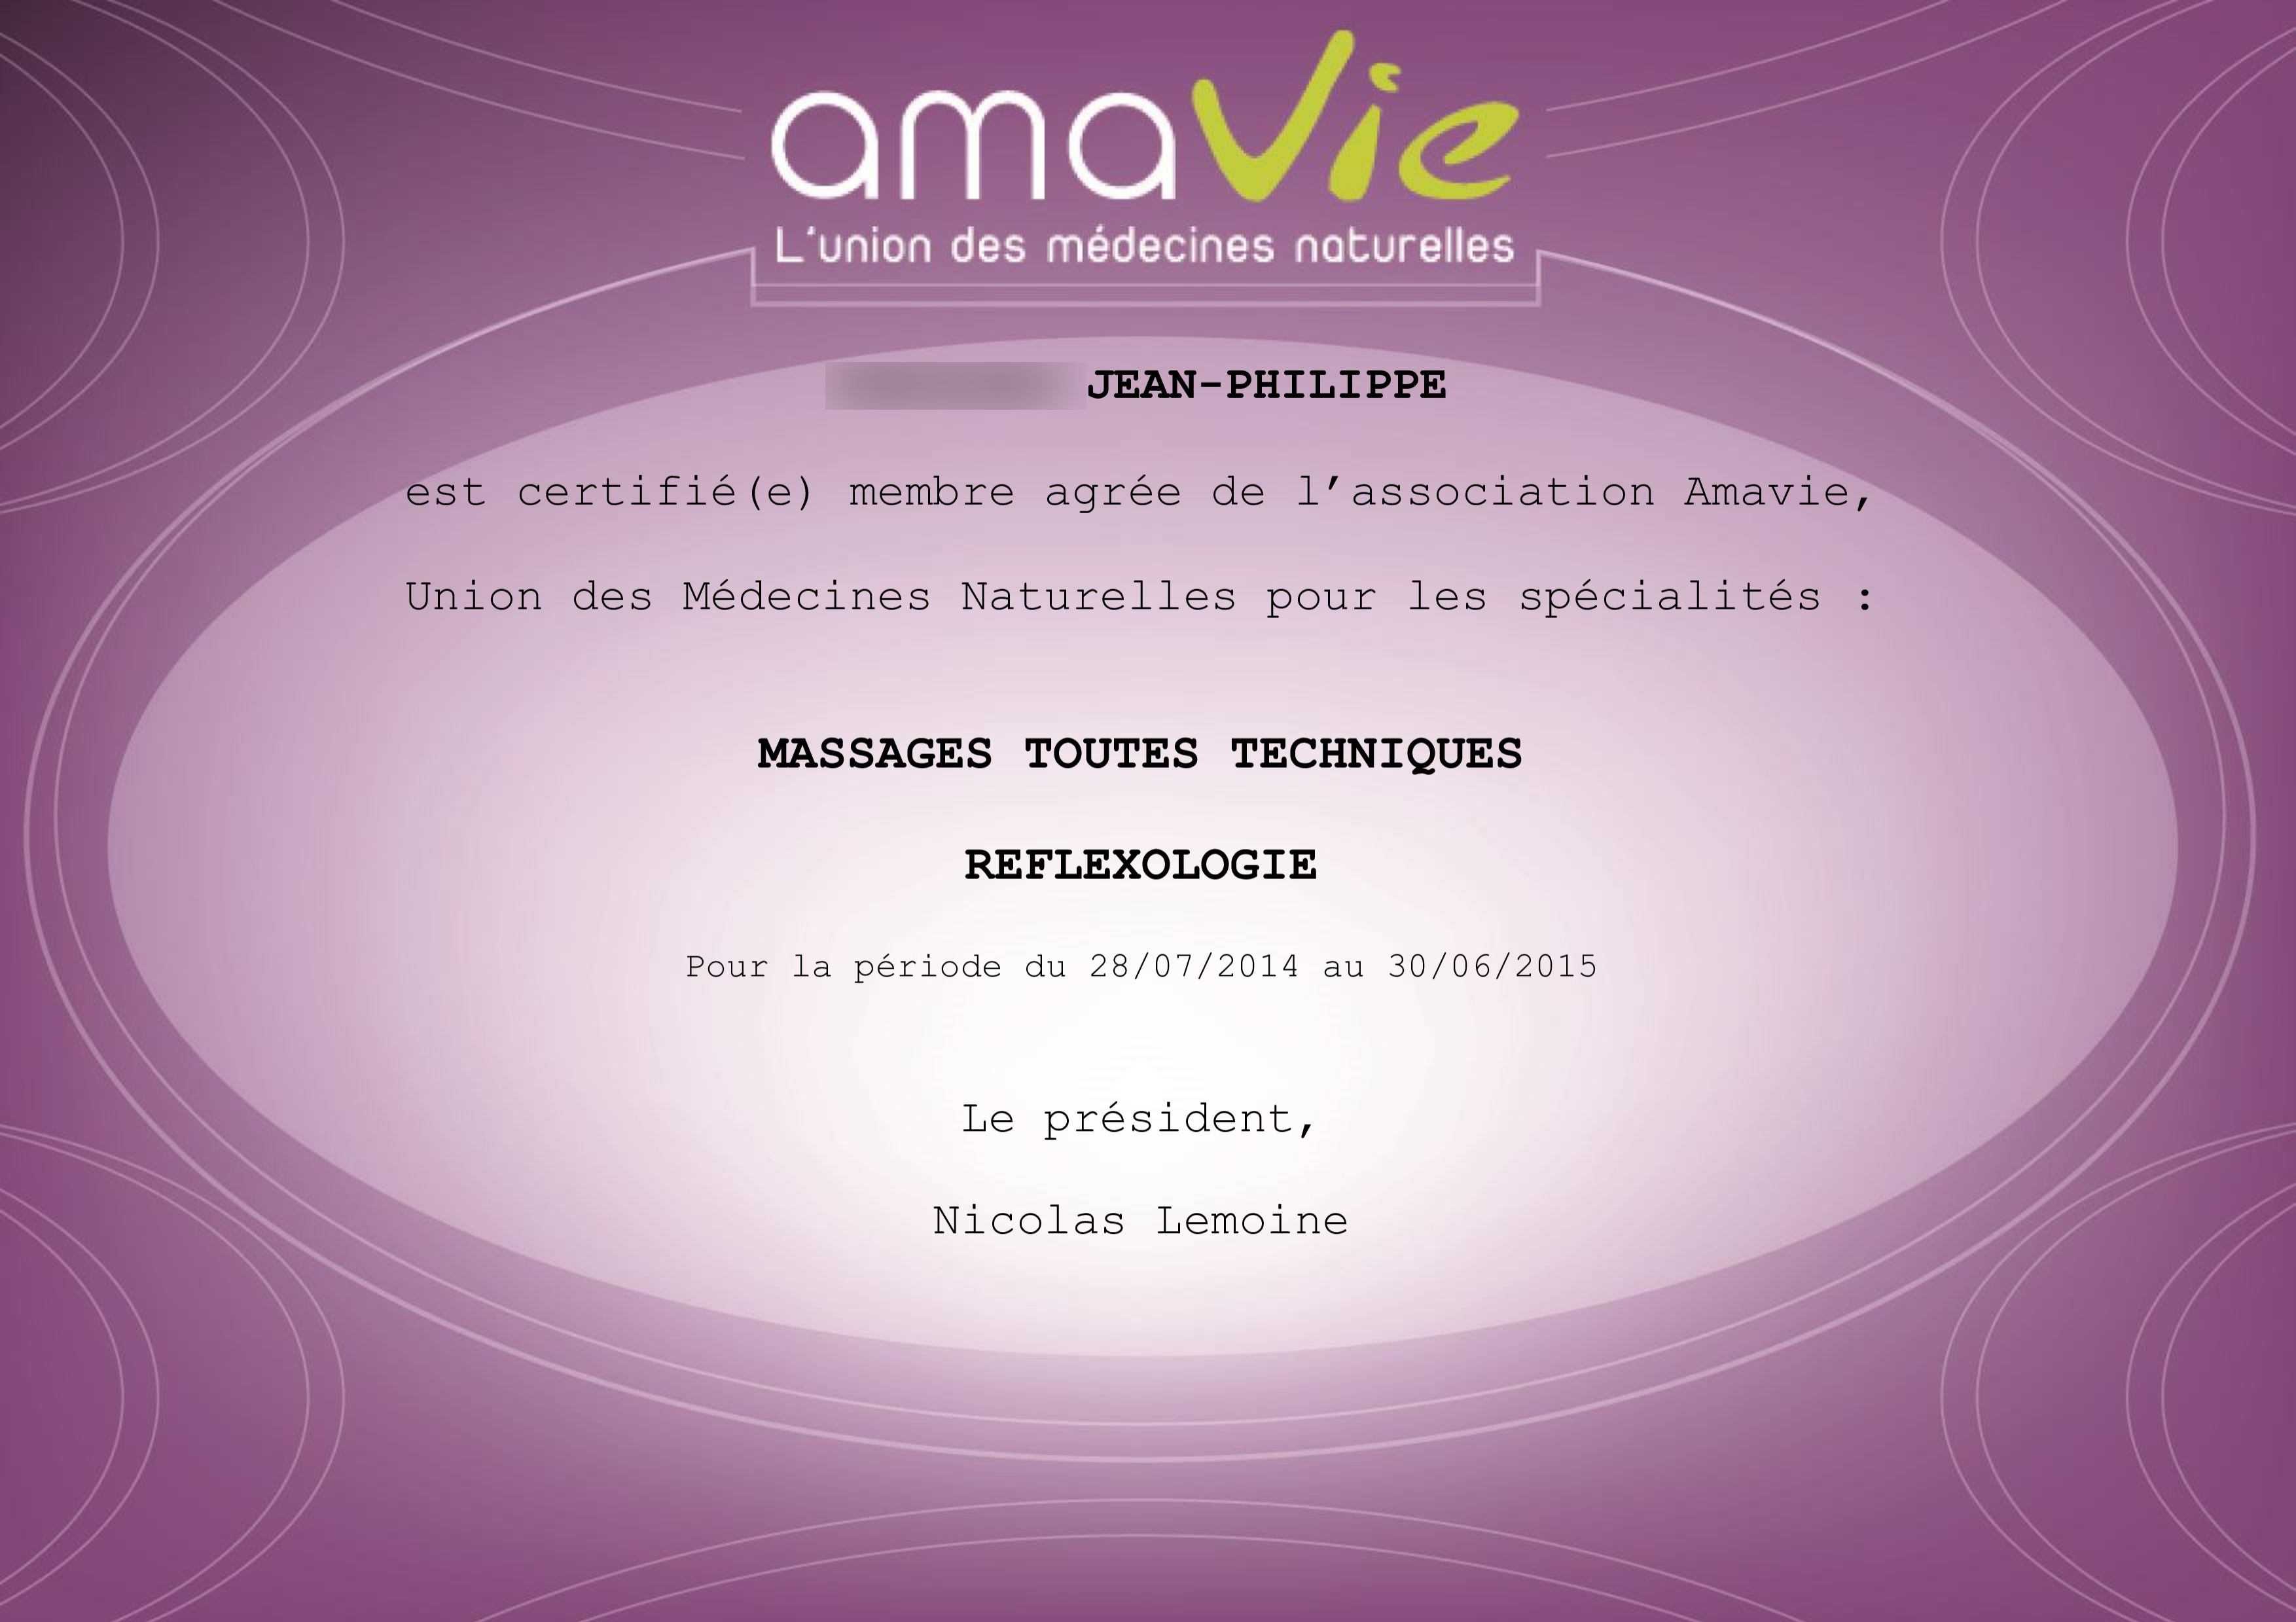 57166e0cd2fba_LABEL AMAVIE.pdf